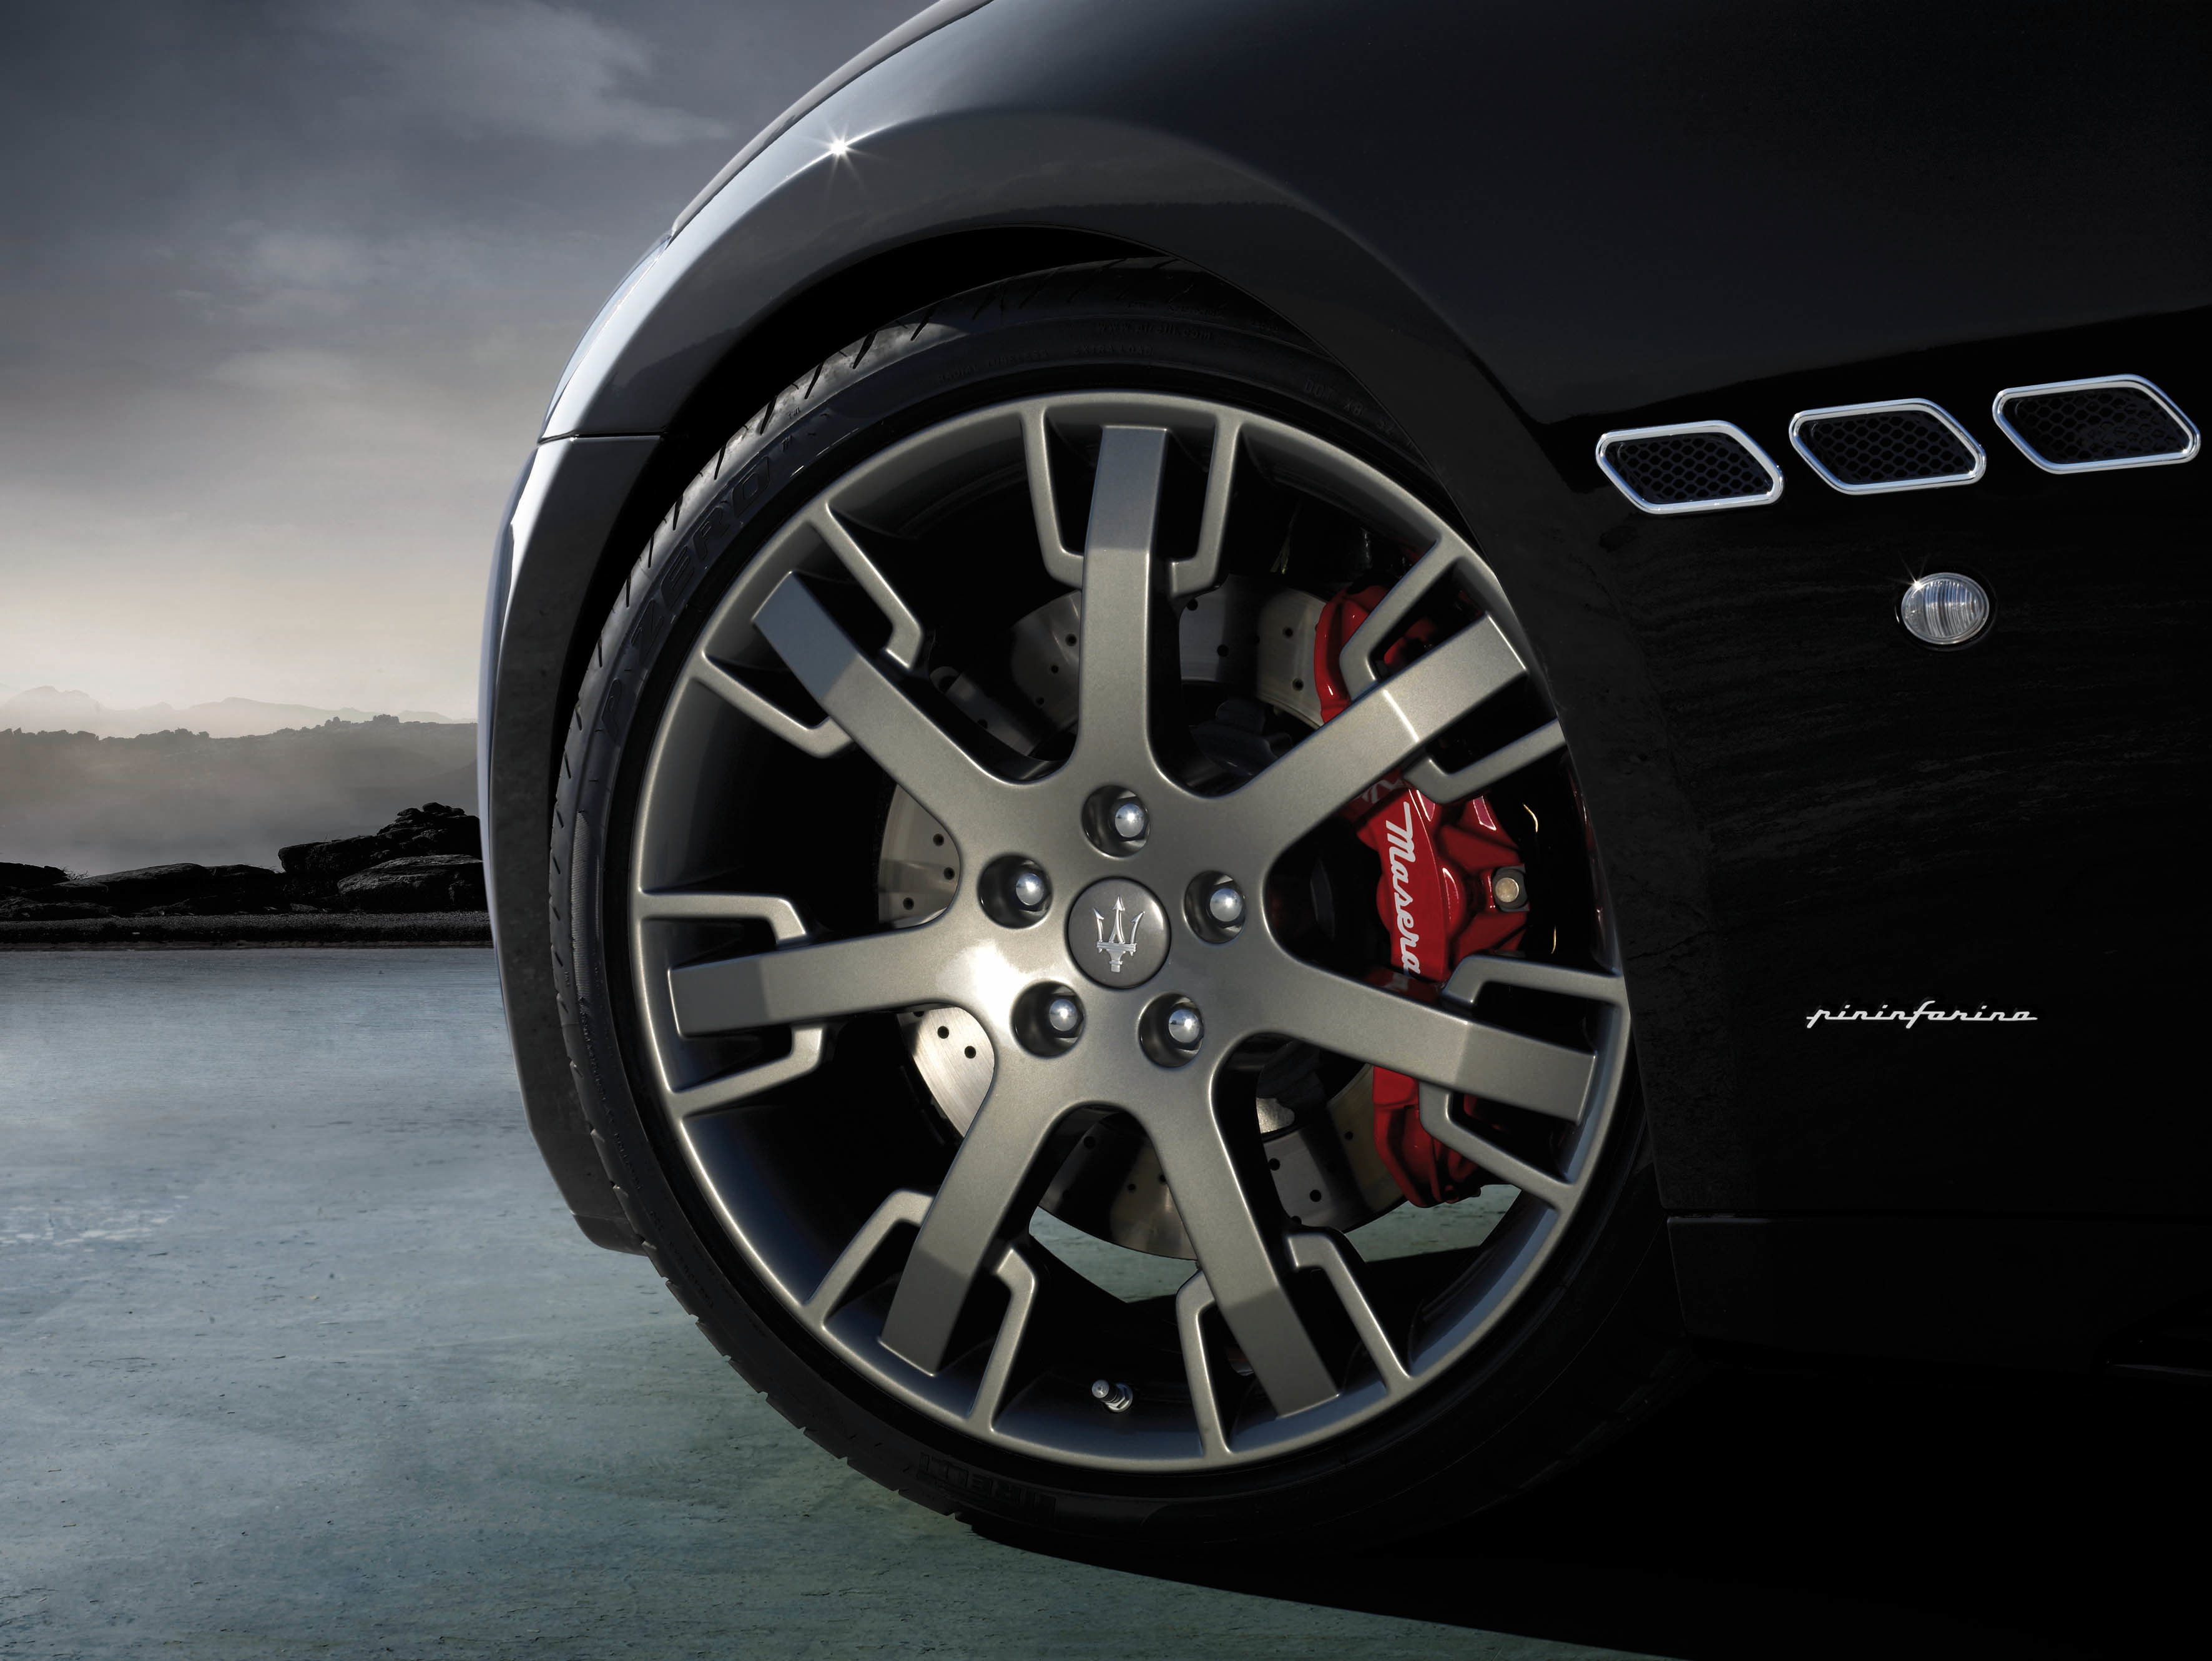 wheels Rims HD Wallpaper